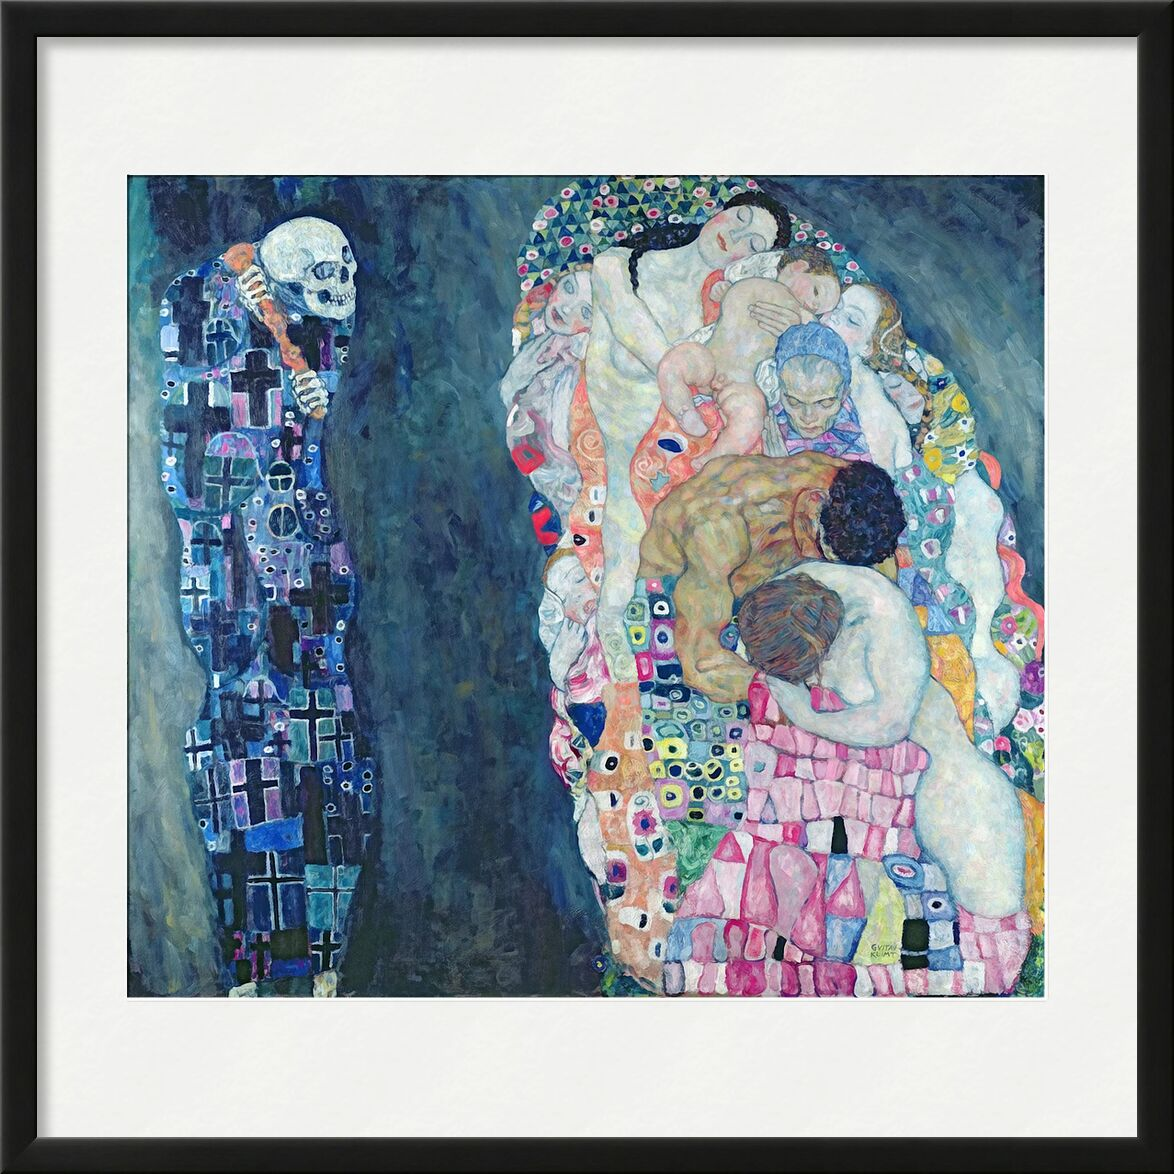 Death and Life, circa 1911 - Gustav Klimt from AUX BEAUX-ARTS, Prodi Art, circle of life, abstract, painting, death, life, KLIMT